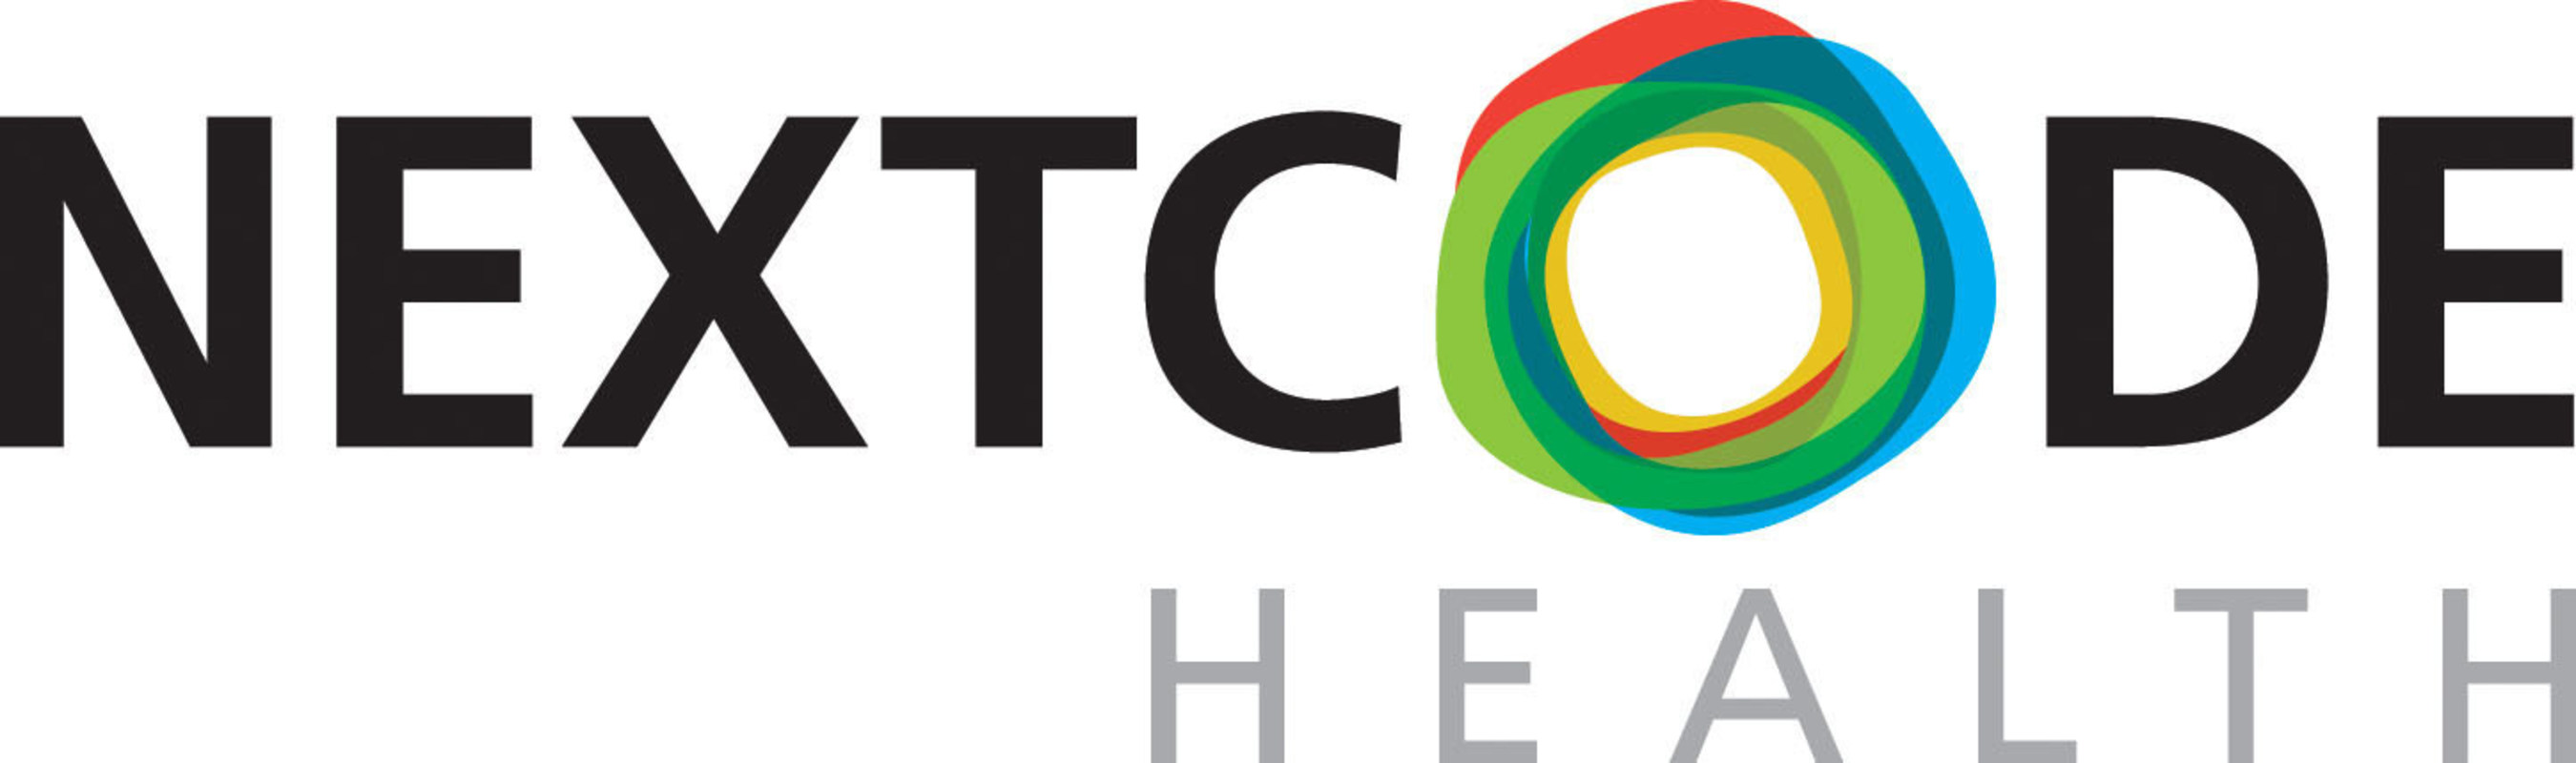 NextCODE puts the world's most proven sequence analysis platform in the hands of clinicians and researchers around the globe, enabling them to use the full power of the genome to better diagnose and treat disease.